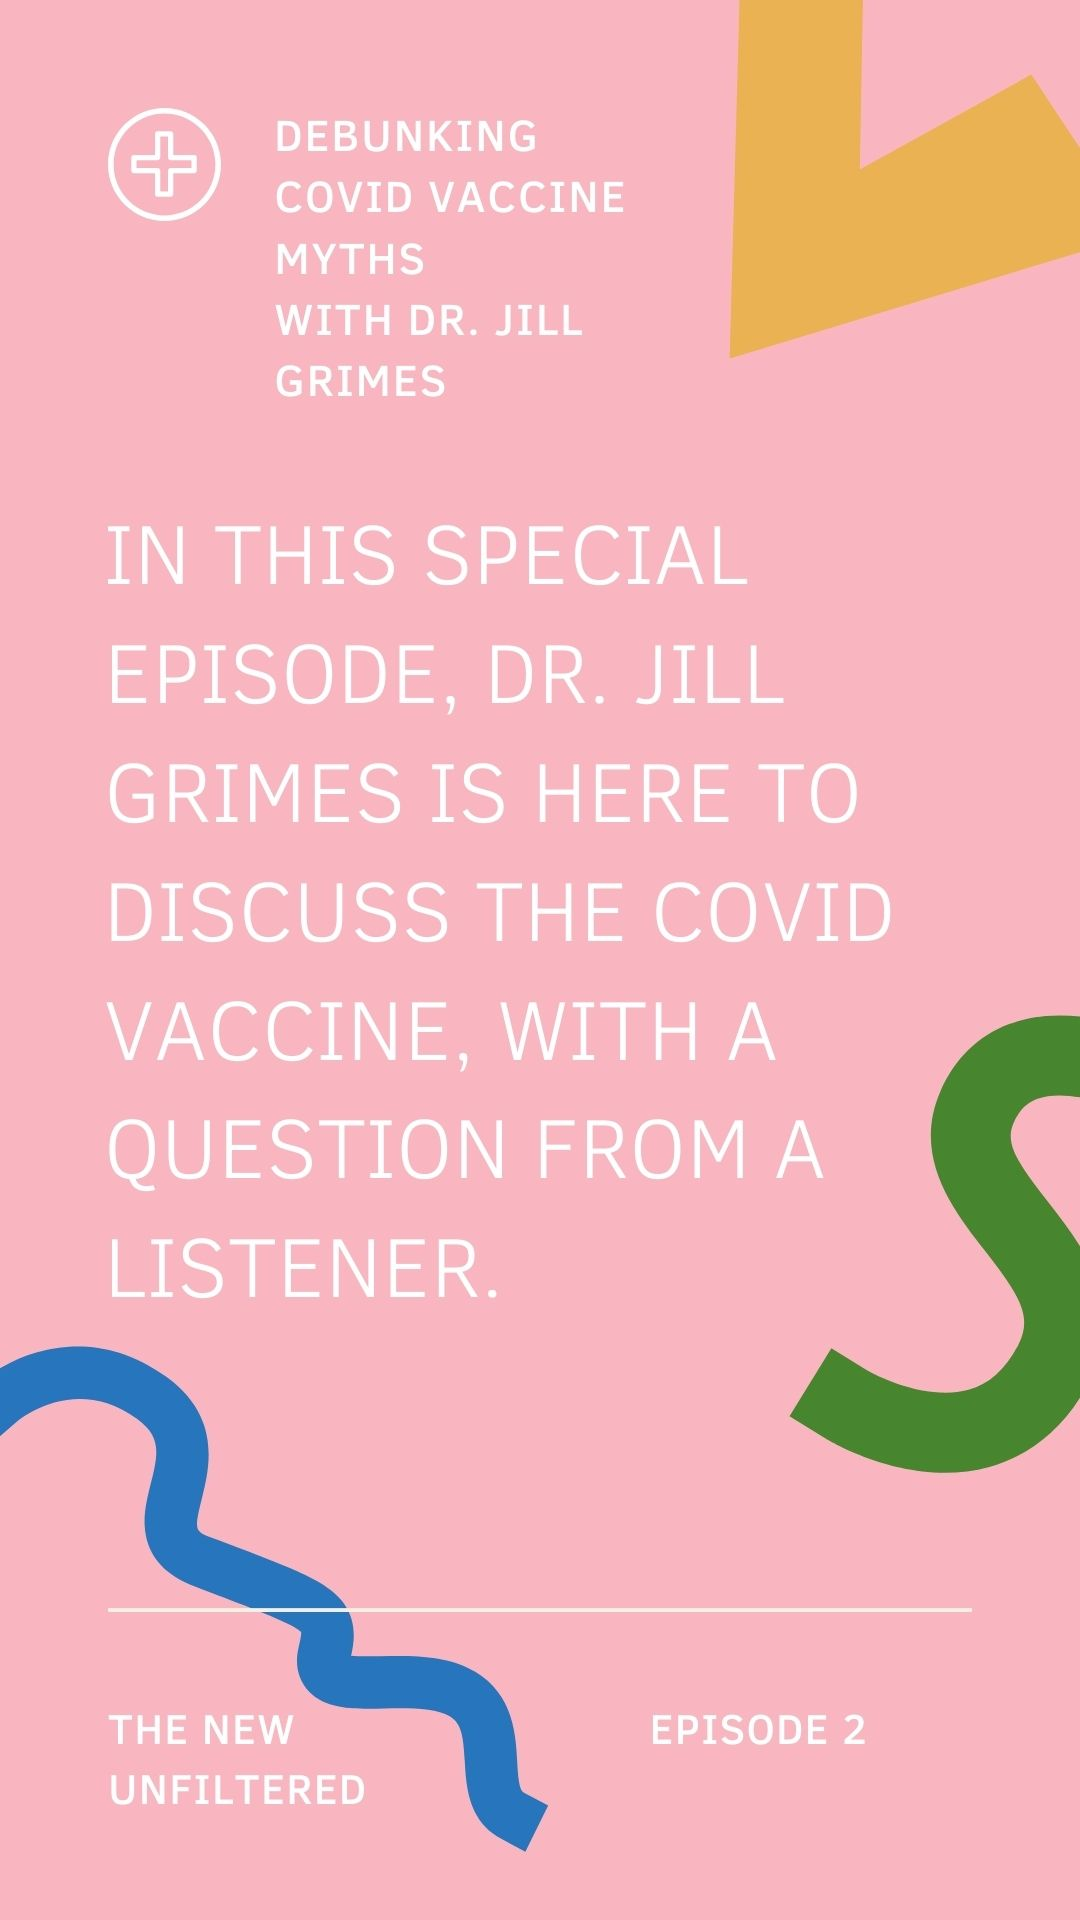 Debunking Covid Vaccine Myths with Dr. Jill Grimes